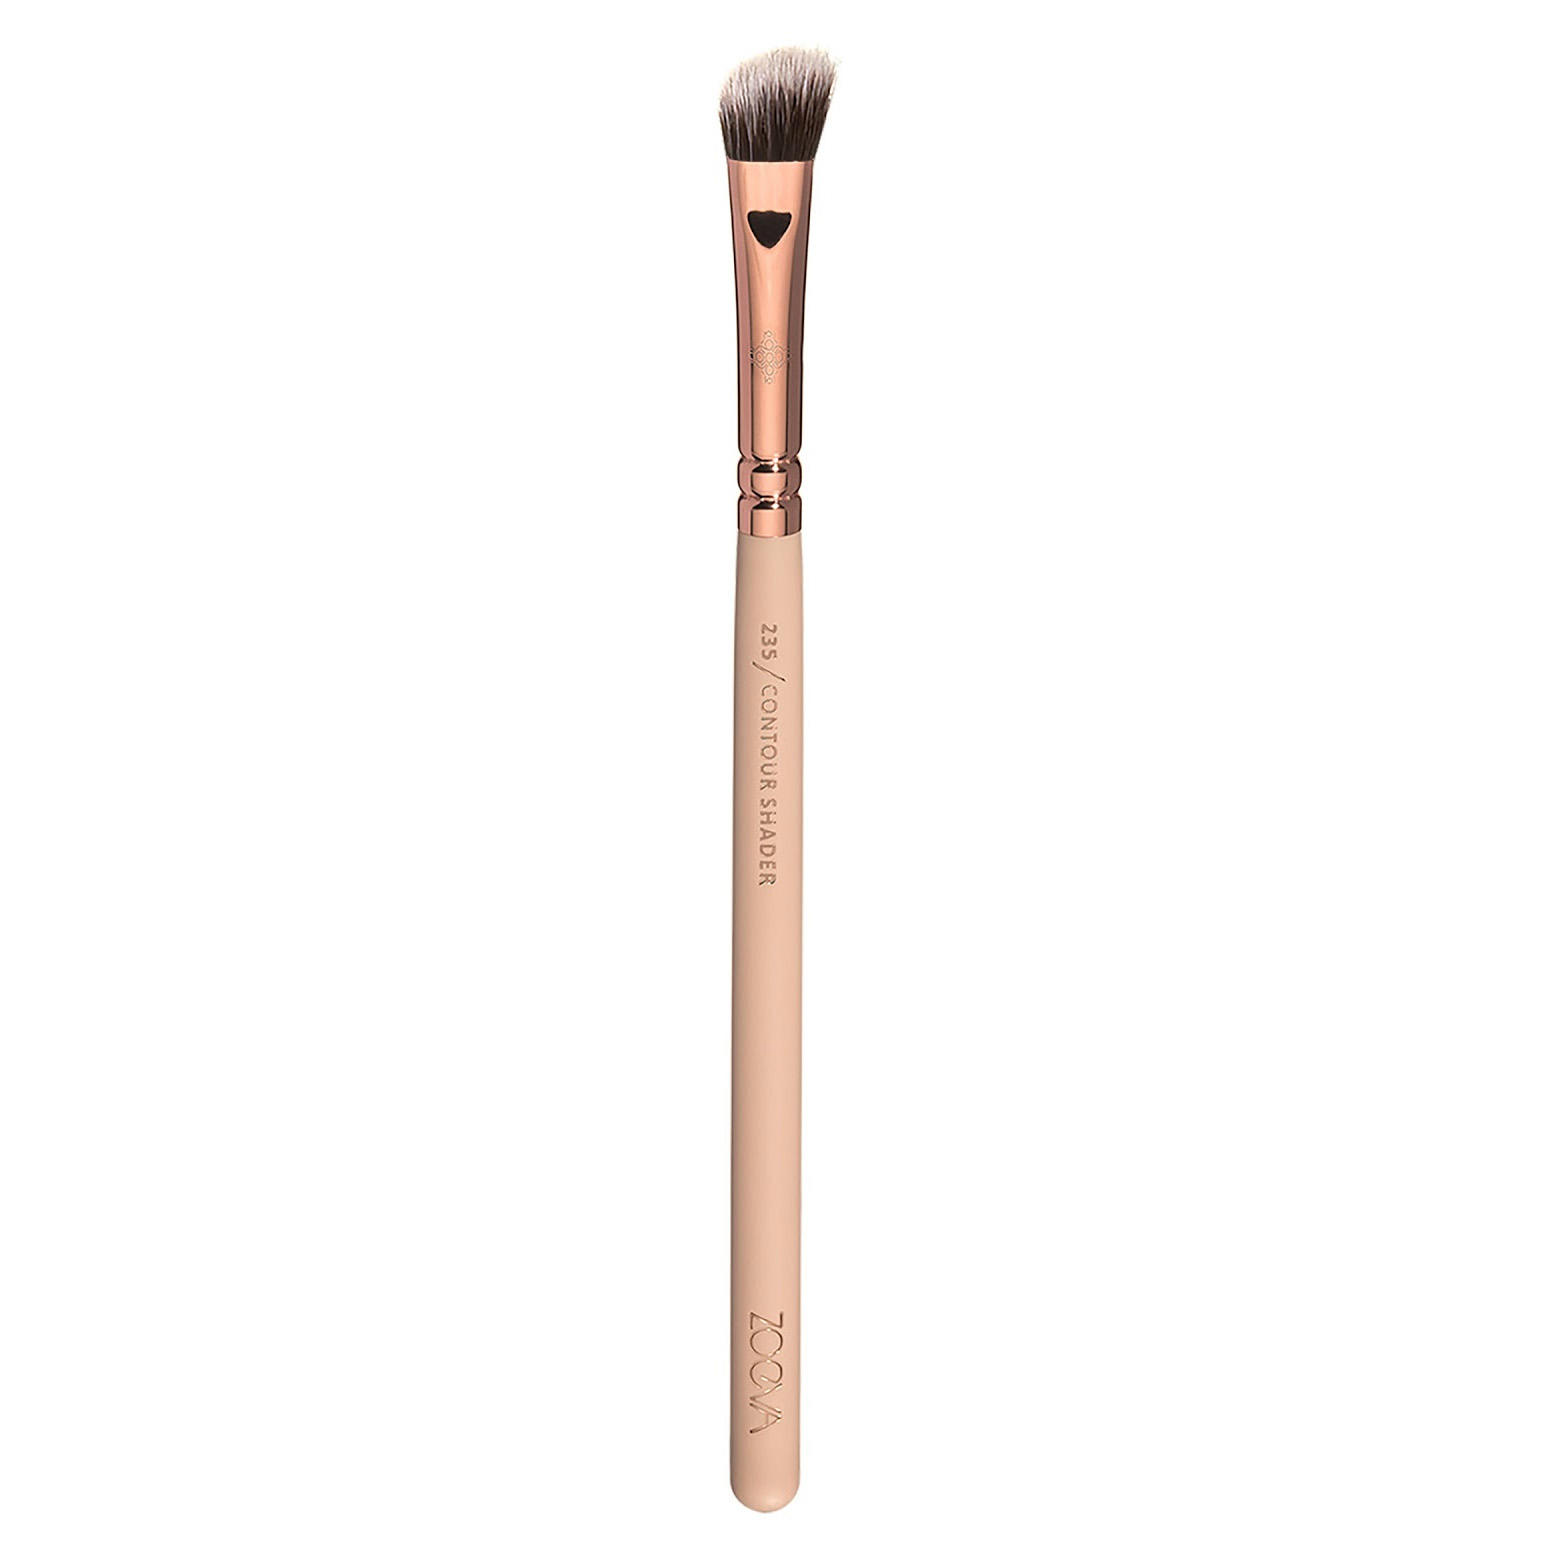 Zoeva Contour Shader Brush Copper 235